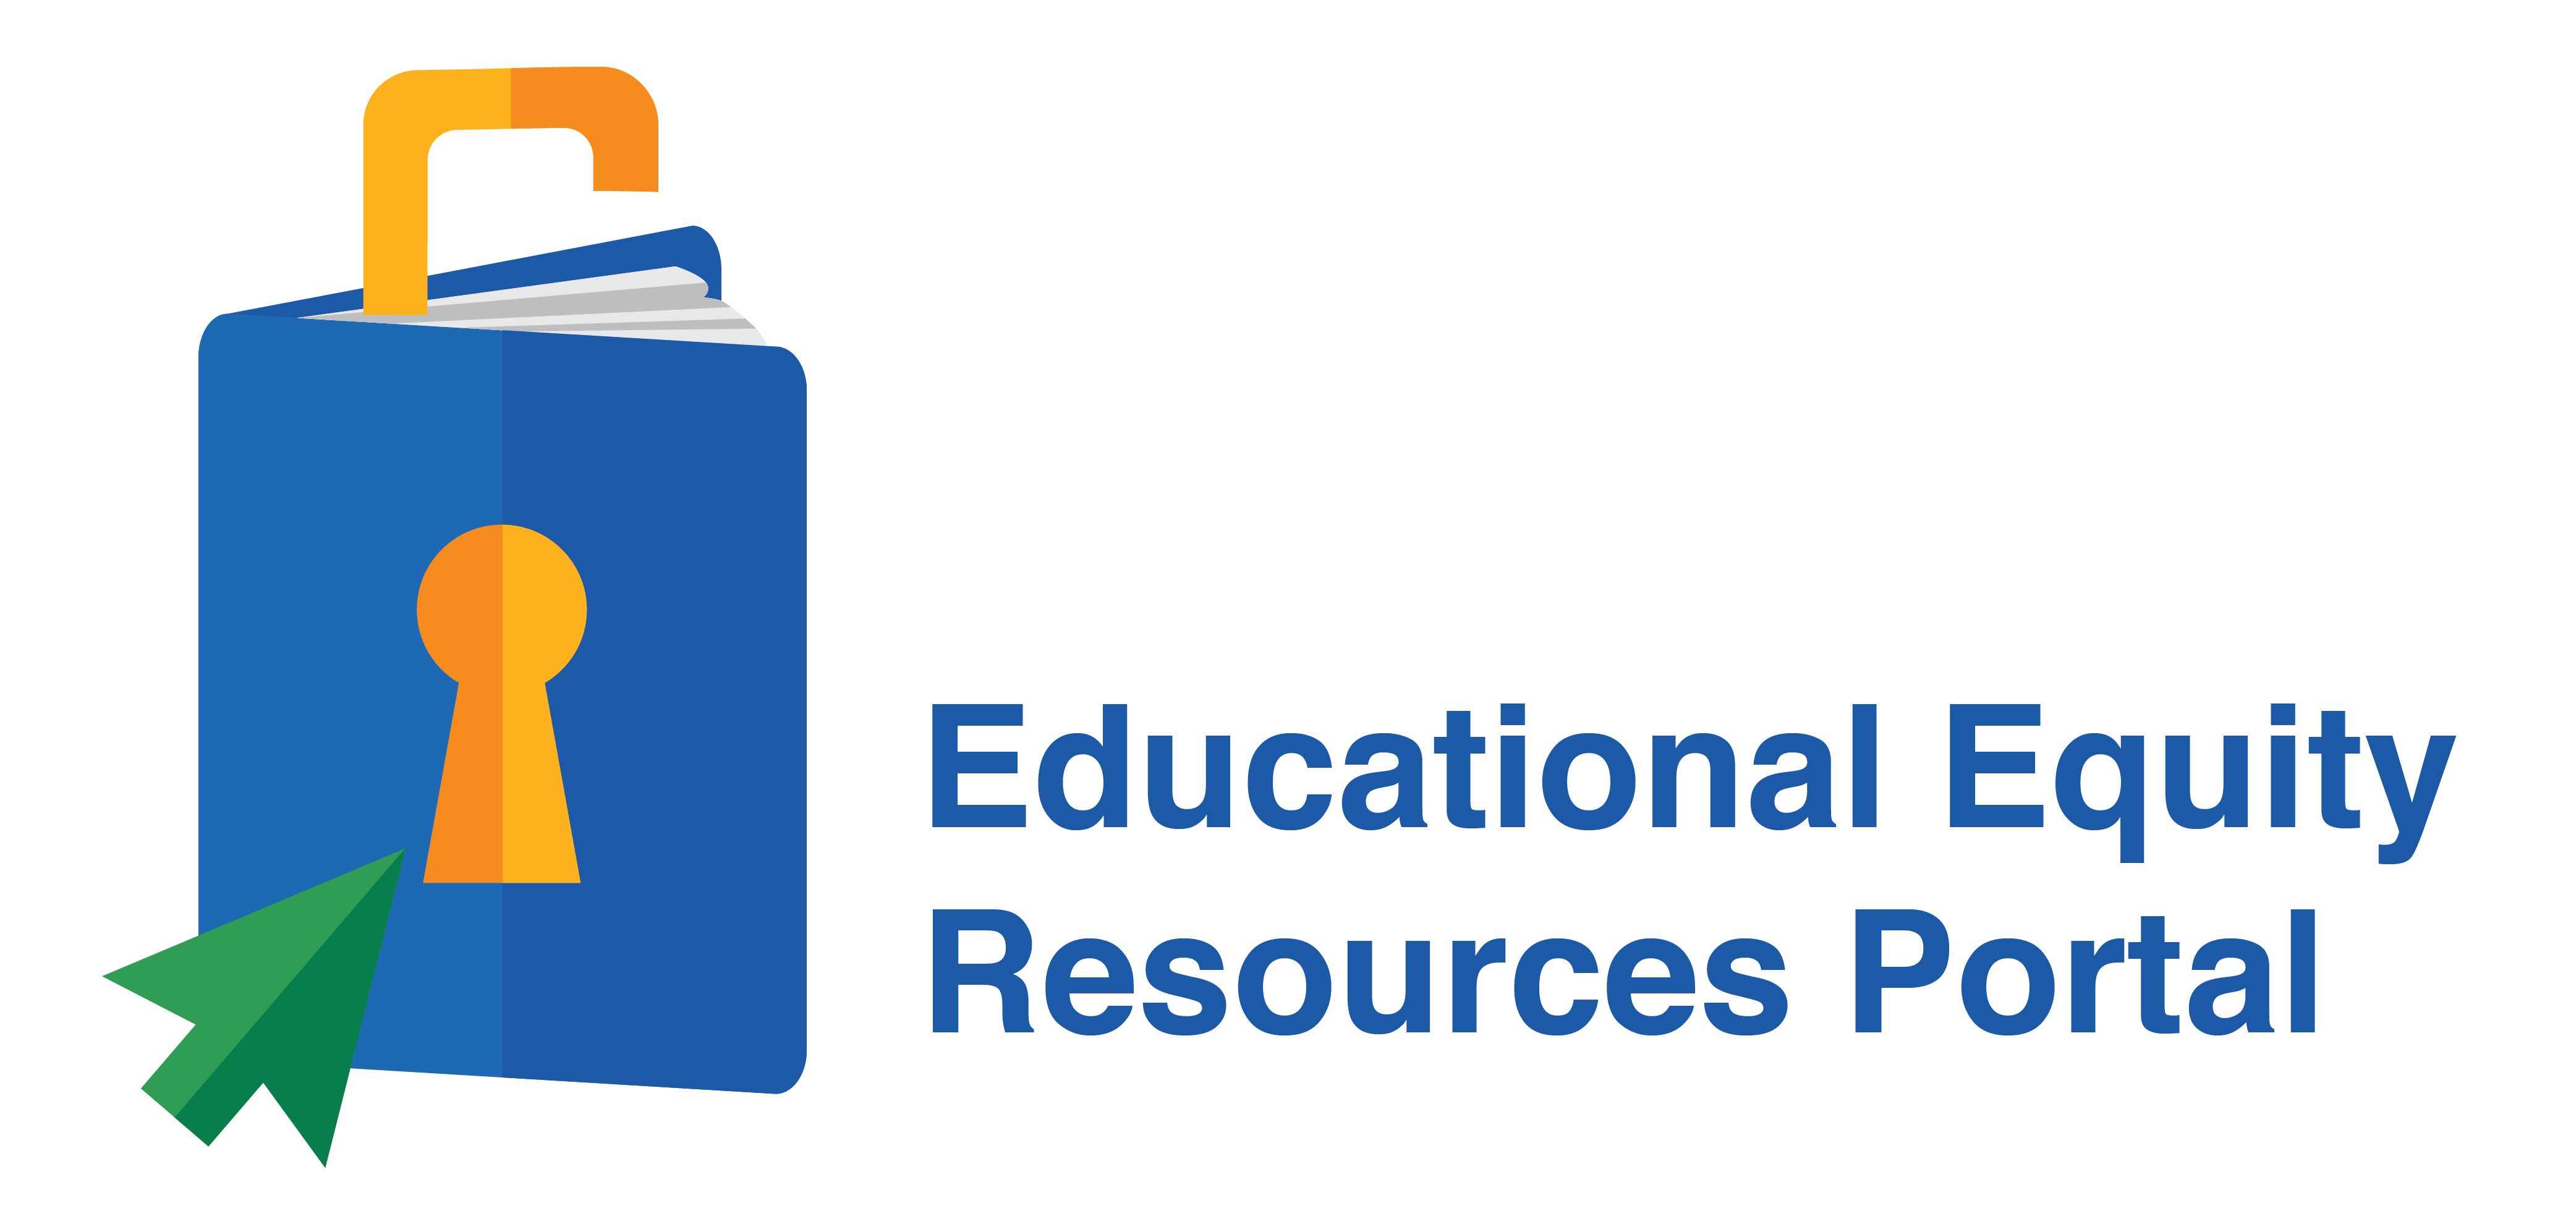 Educational Equity Resources Portal